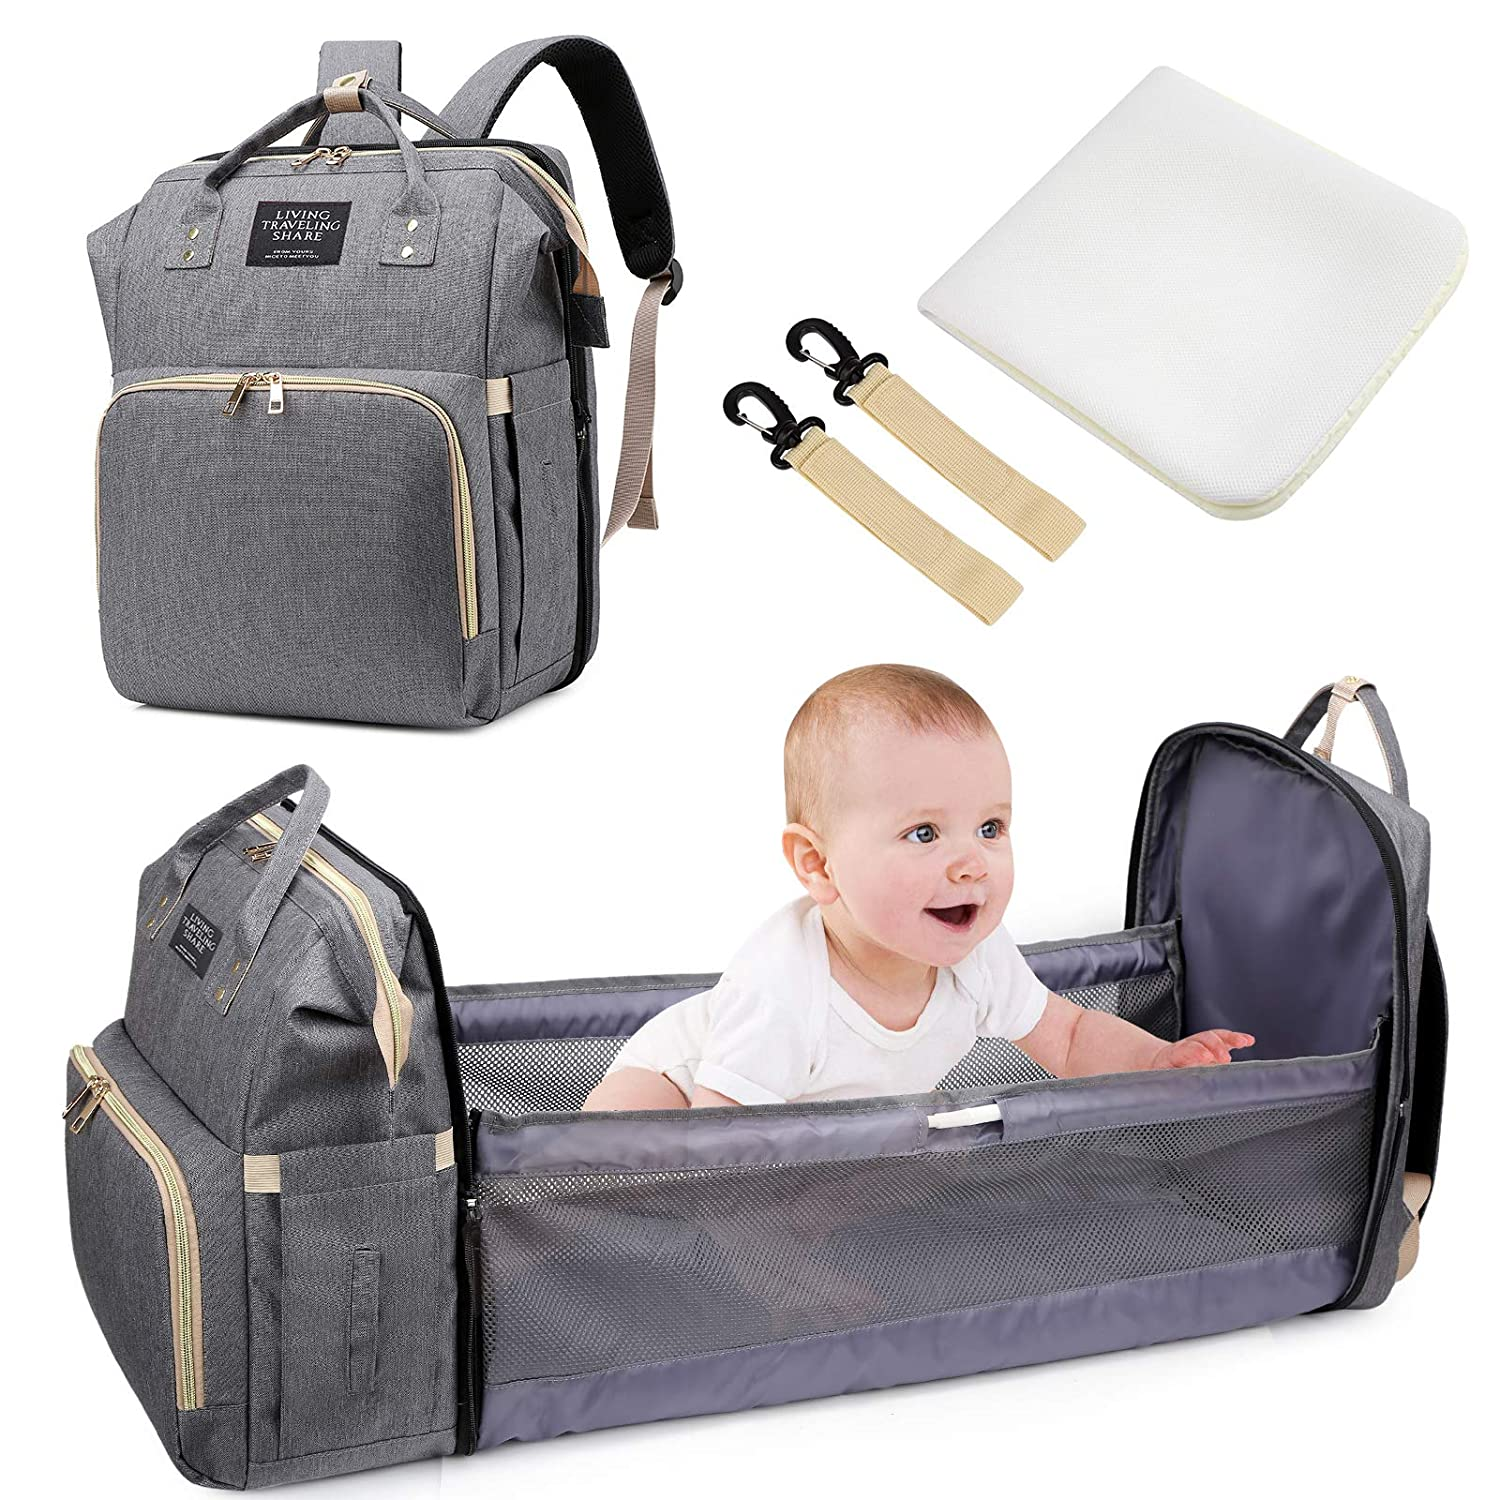 Baby Diaper Backpack - Uiter 3 in 1 Baby Doll Diaper Bag Portable Bed, Foldable Travel Infant Bassinets for Baby Waterproof Sleeping Bag with Mattress, Large Space Mummy Bag (Grey)